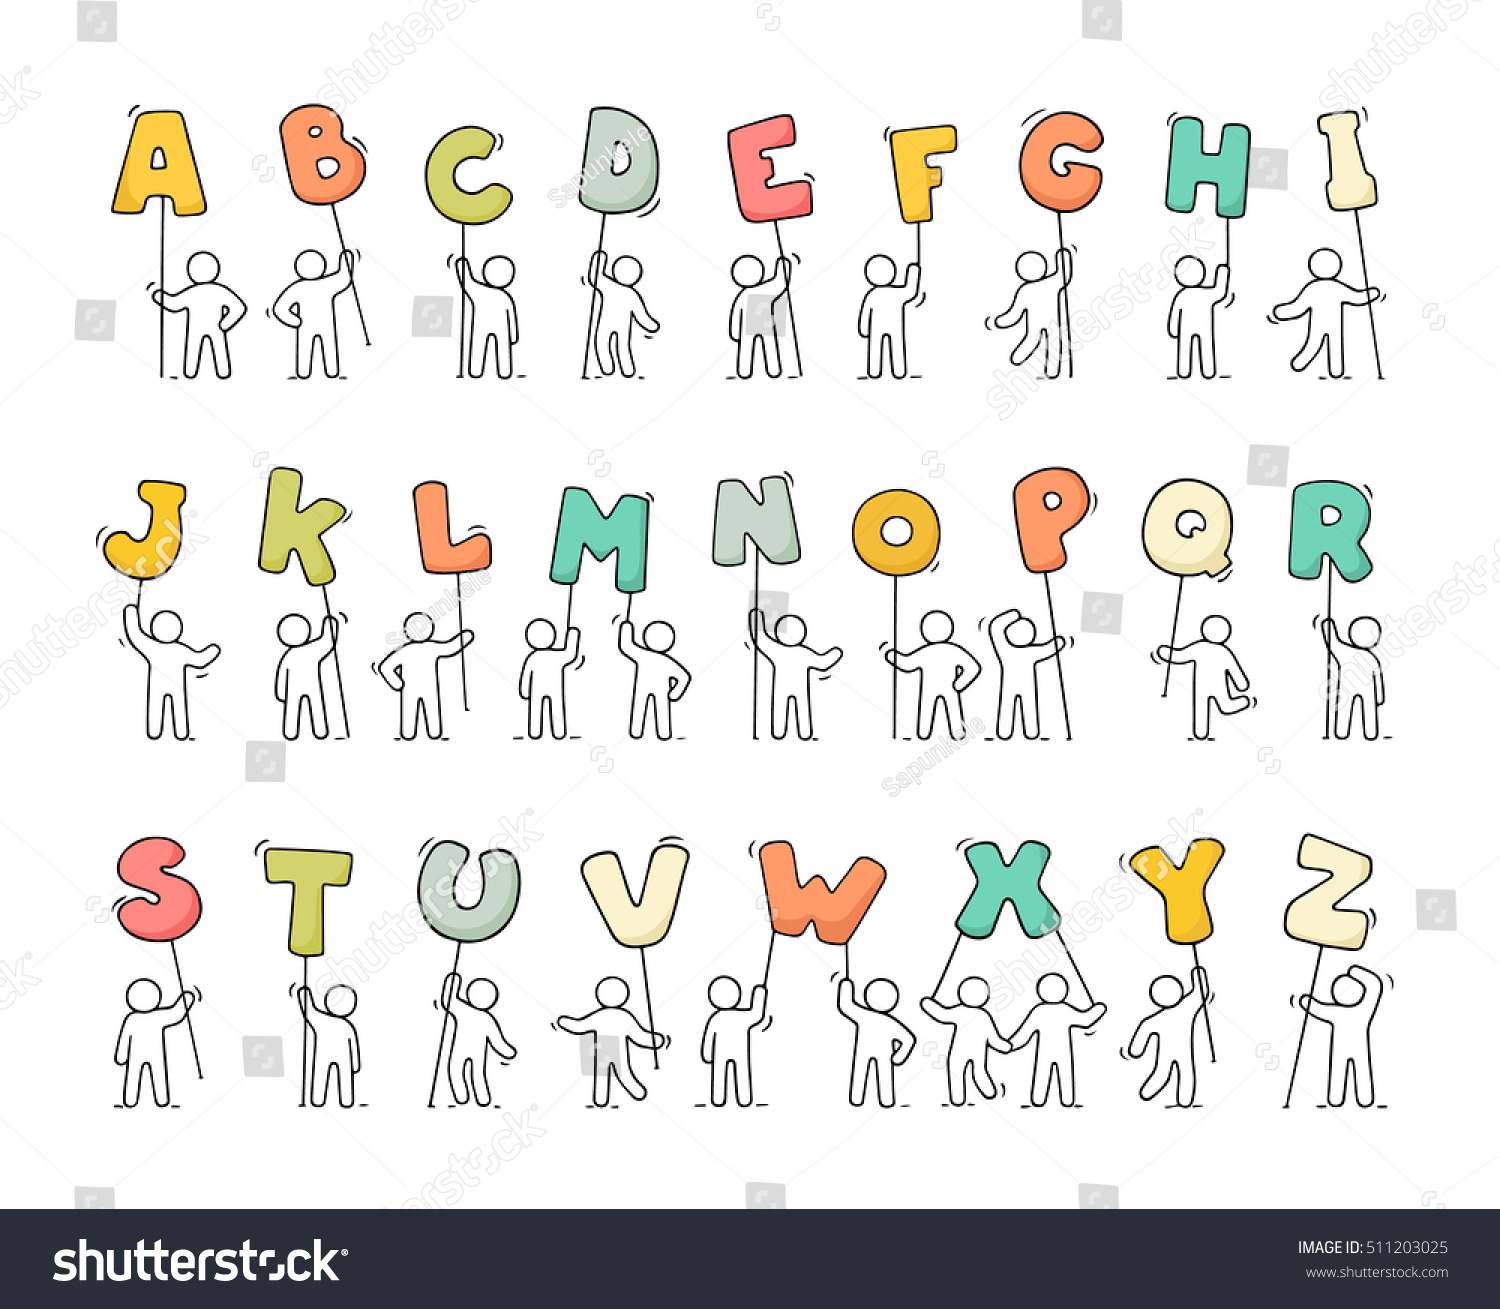 Cartoon Icons Set Sketch Little People Stock Vector (Royalty Free ...